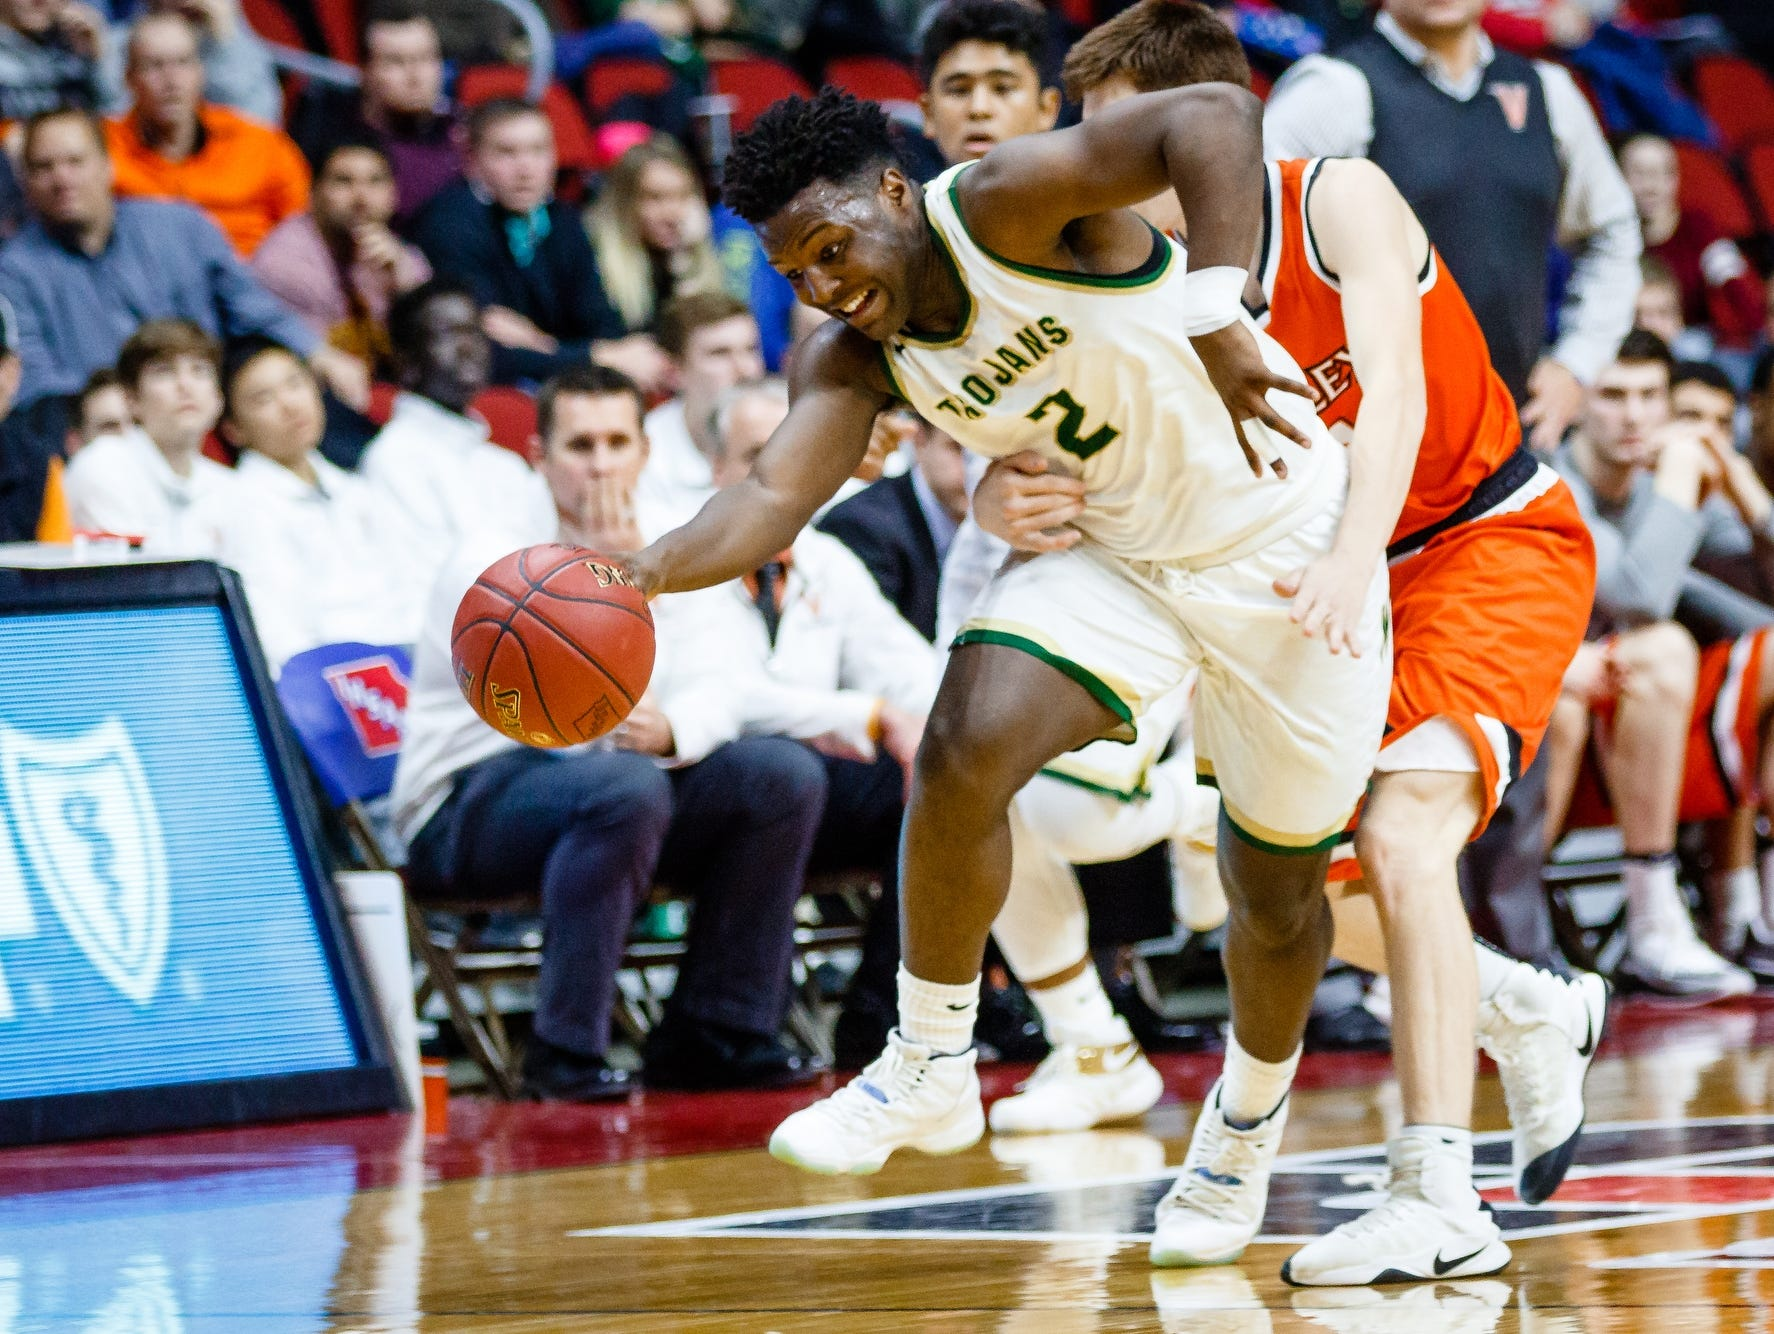 Iowa City West's Devontae Lane (2) is fouled by Valley's Reese Skinner (12) during their 4A state basketball championship game on Saturday, March 11, 2017, in Des Moines. Iowa City West would go on to win 64-50